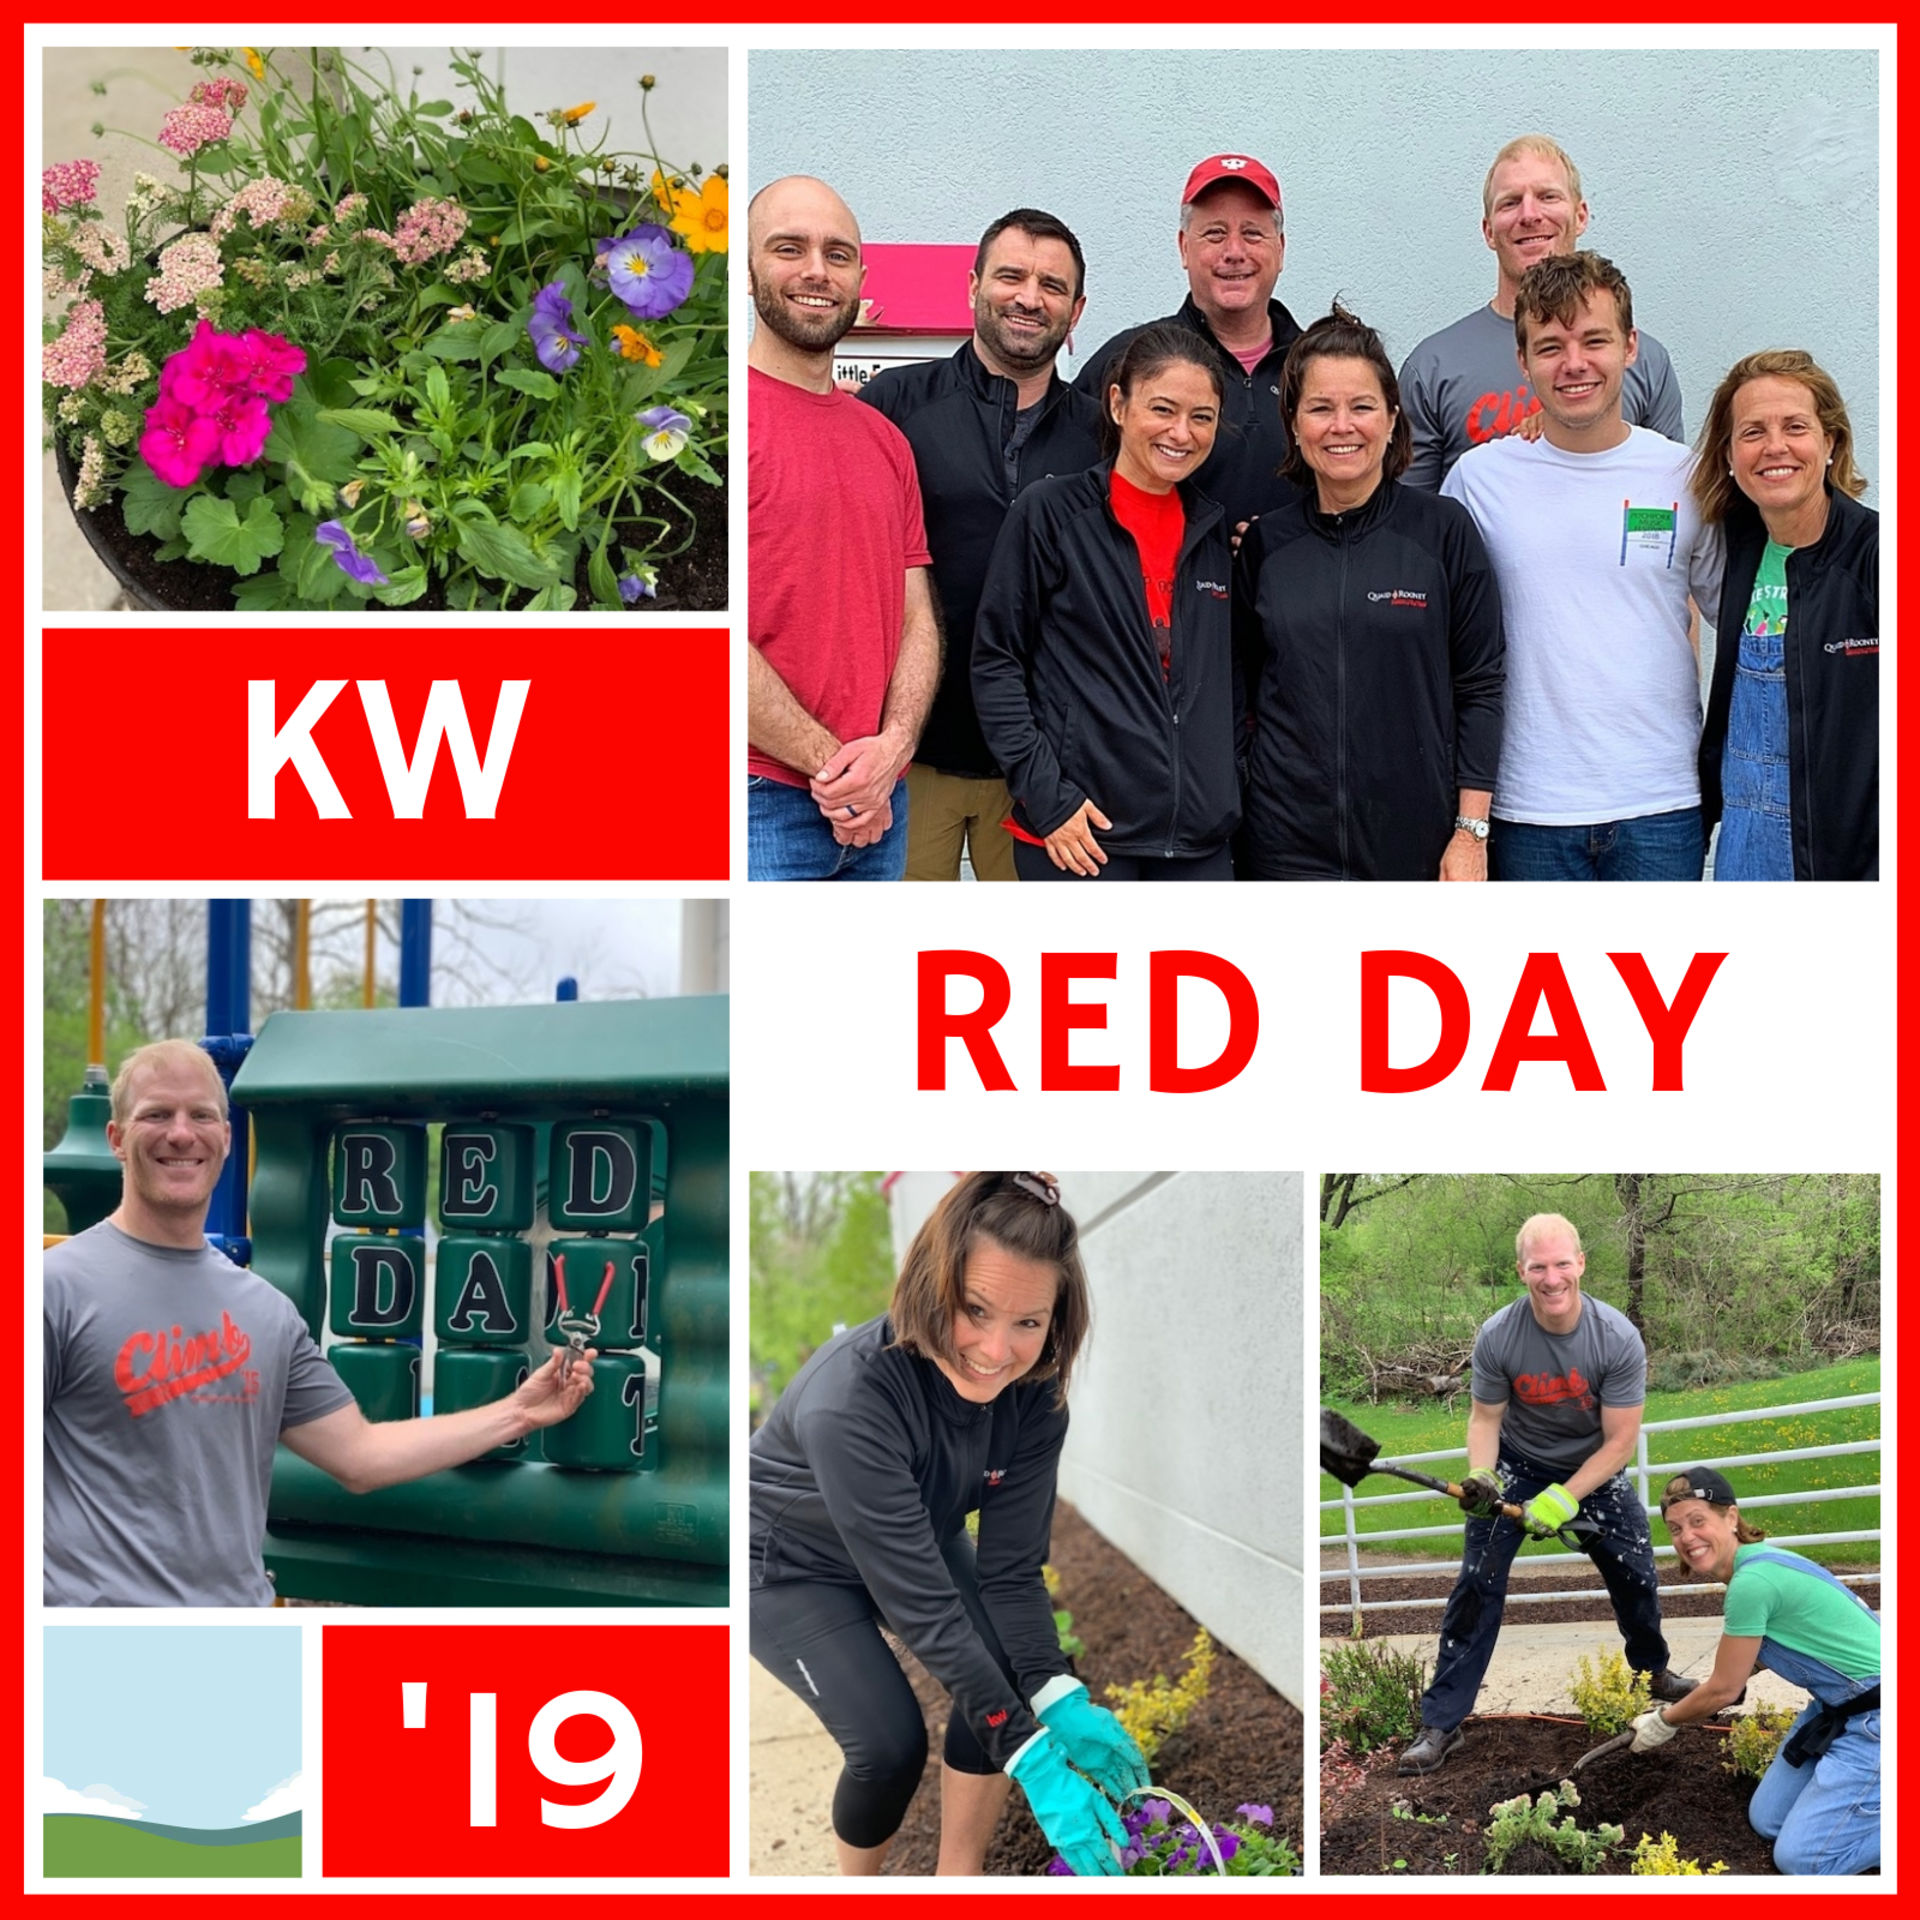 KW Red Day 2019